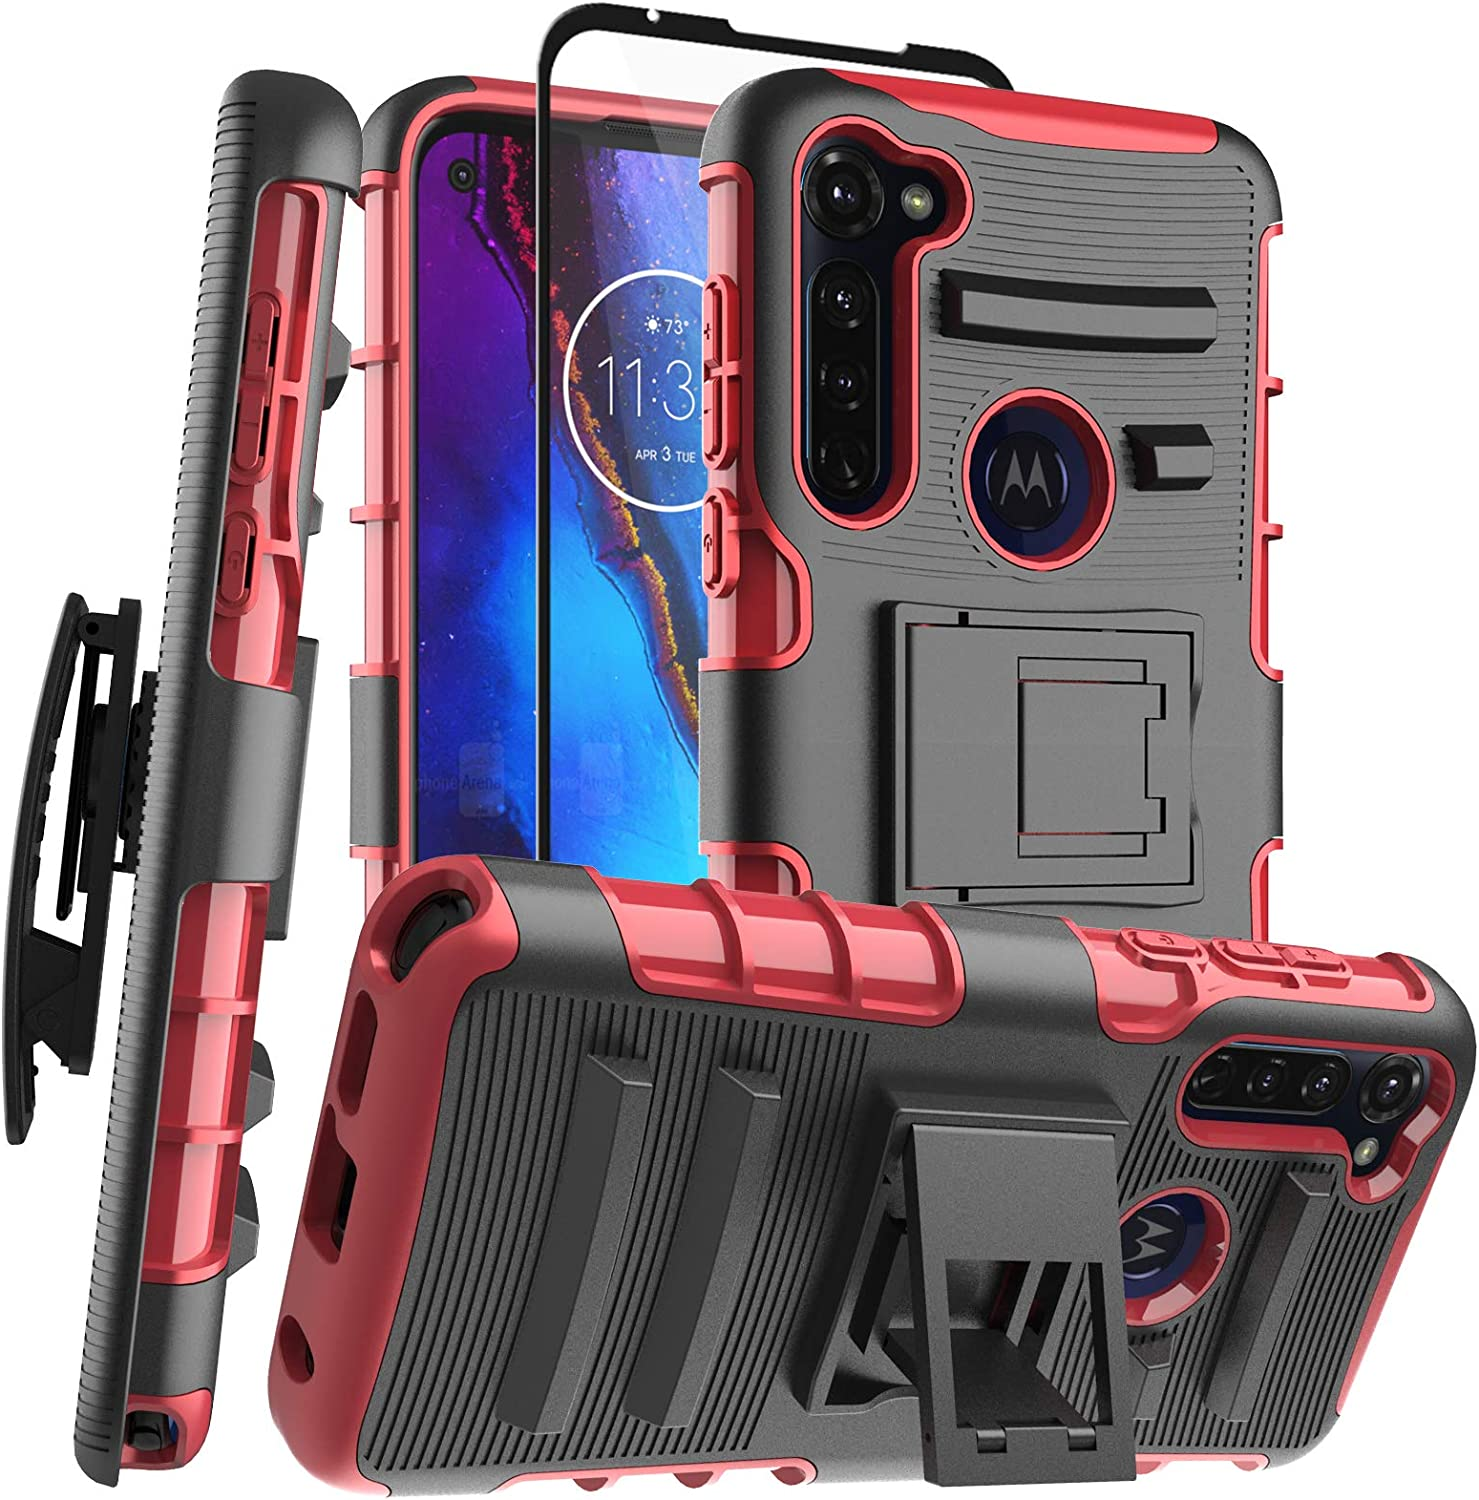 Aoways for Moto G Stylus Case [Tempered Glass Screen Protector] Belt Clip with Kickstand Heavy Duty Military Grade Shockproof Protection Case for Moto G Stylus - Red